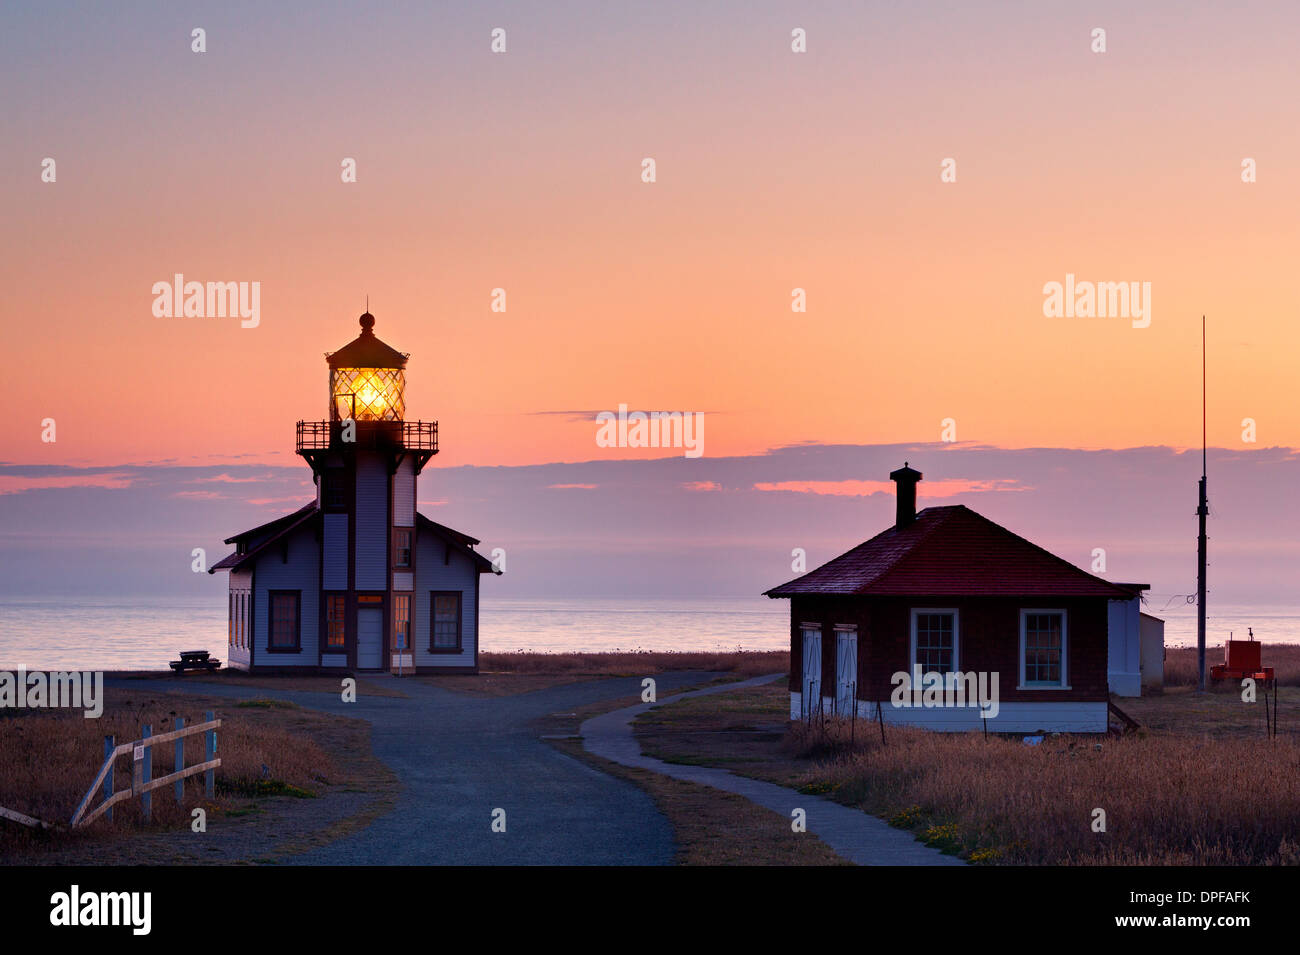 Point Cabrillo Lighthouse, Mendocino County, California, United States of America, North America - Stock Image